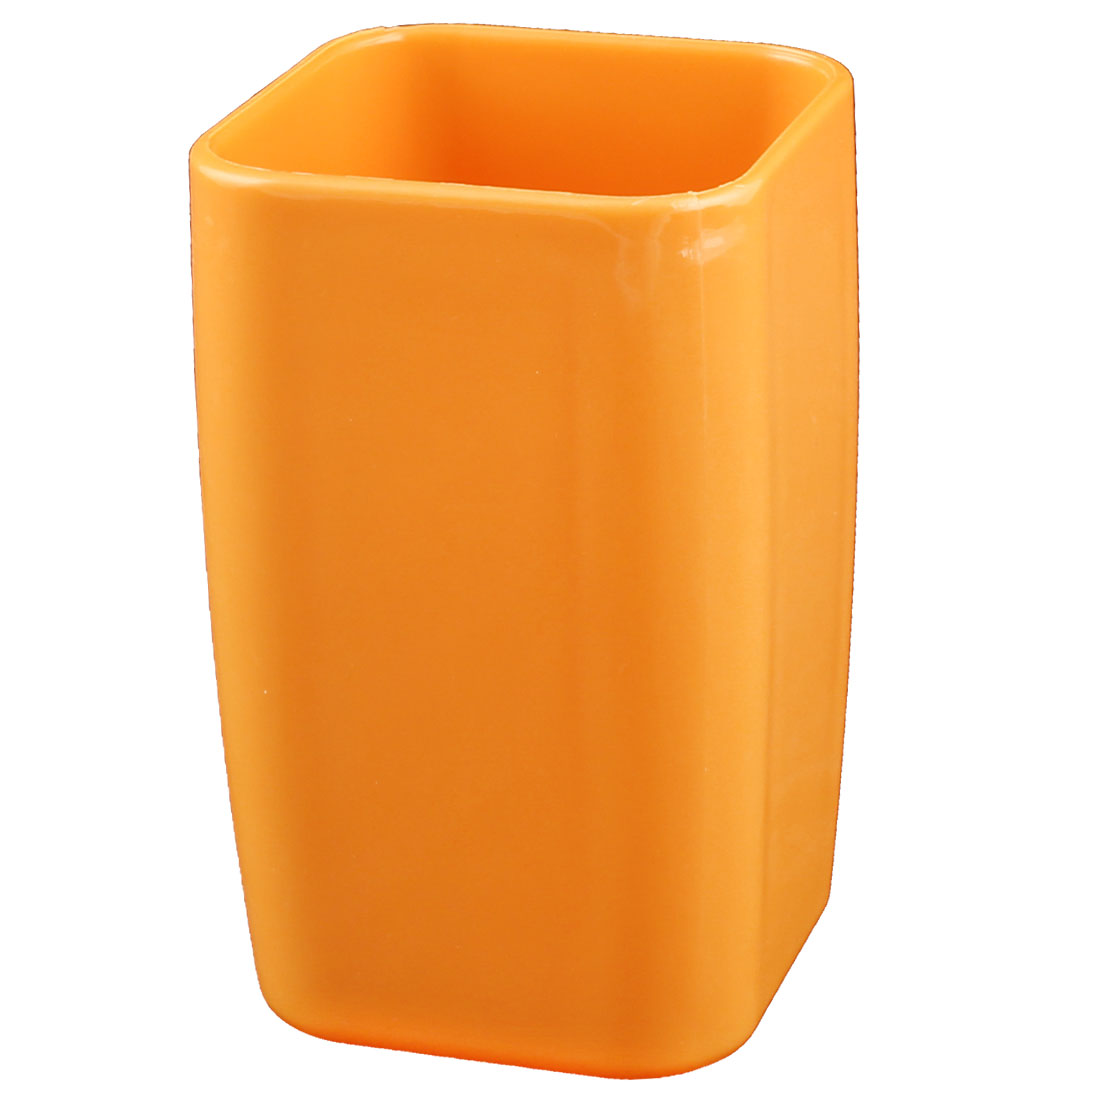 Home Bathroom Plastic Cuboid Shaped Toothbrush Toothpaste Gargle Cup Holder Orange 290ml